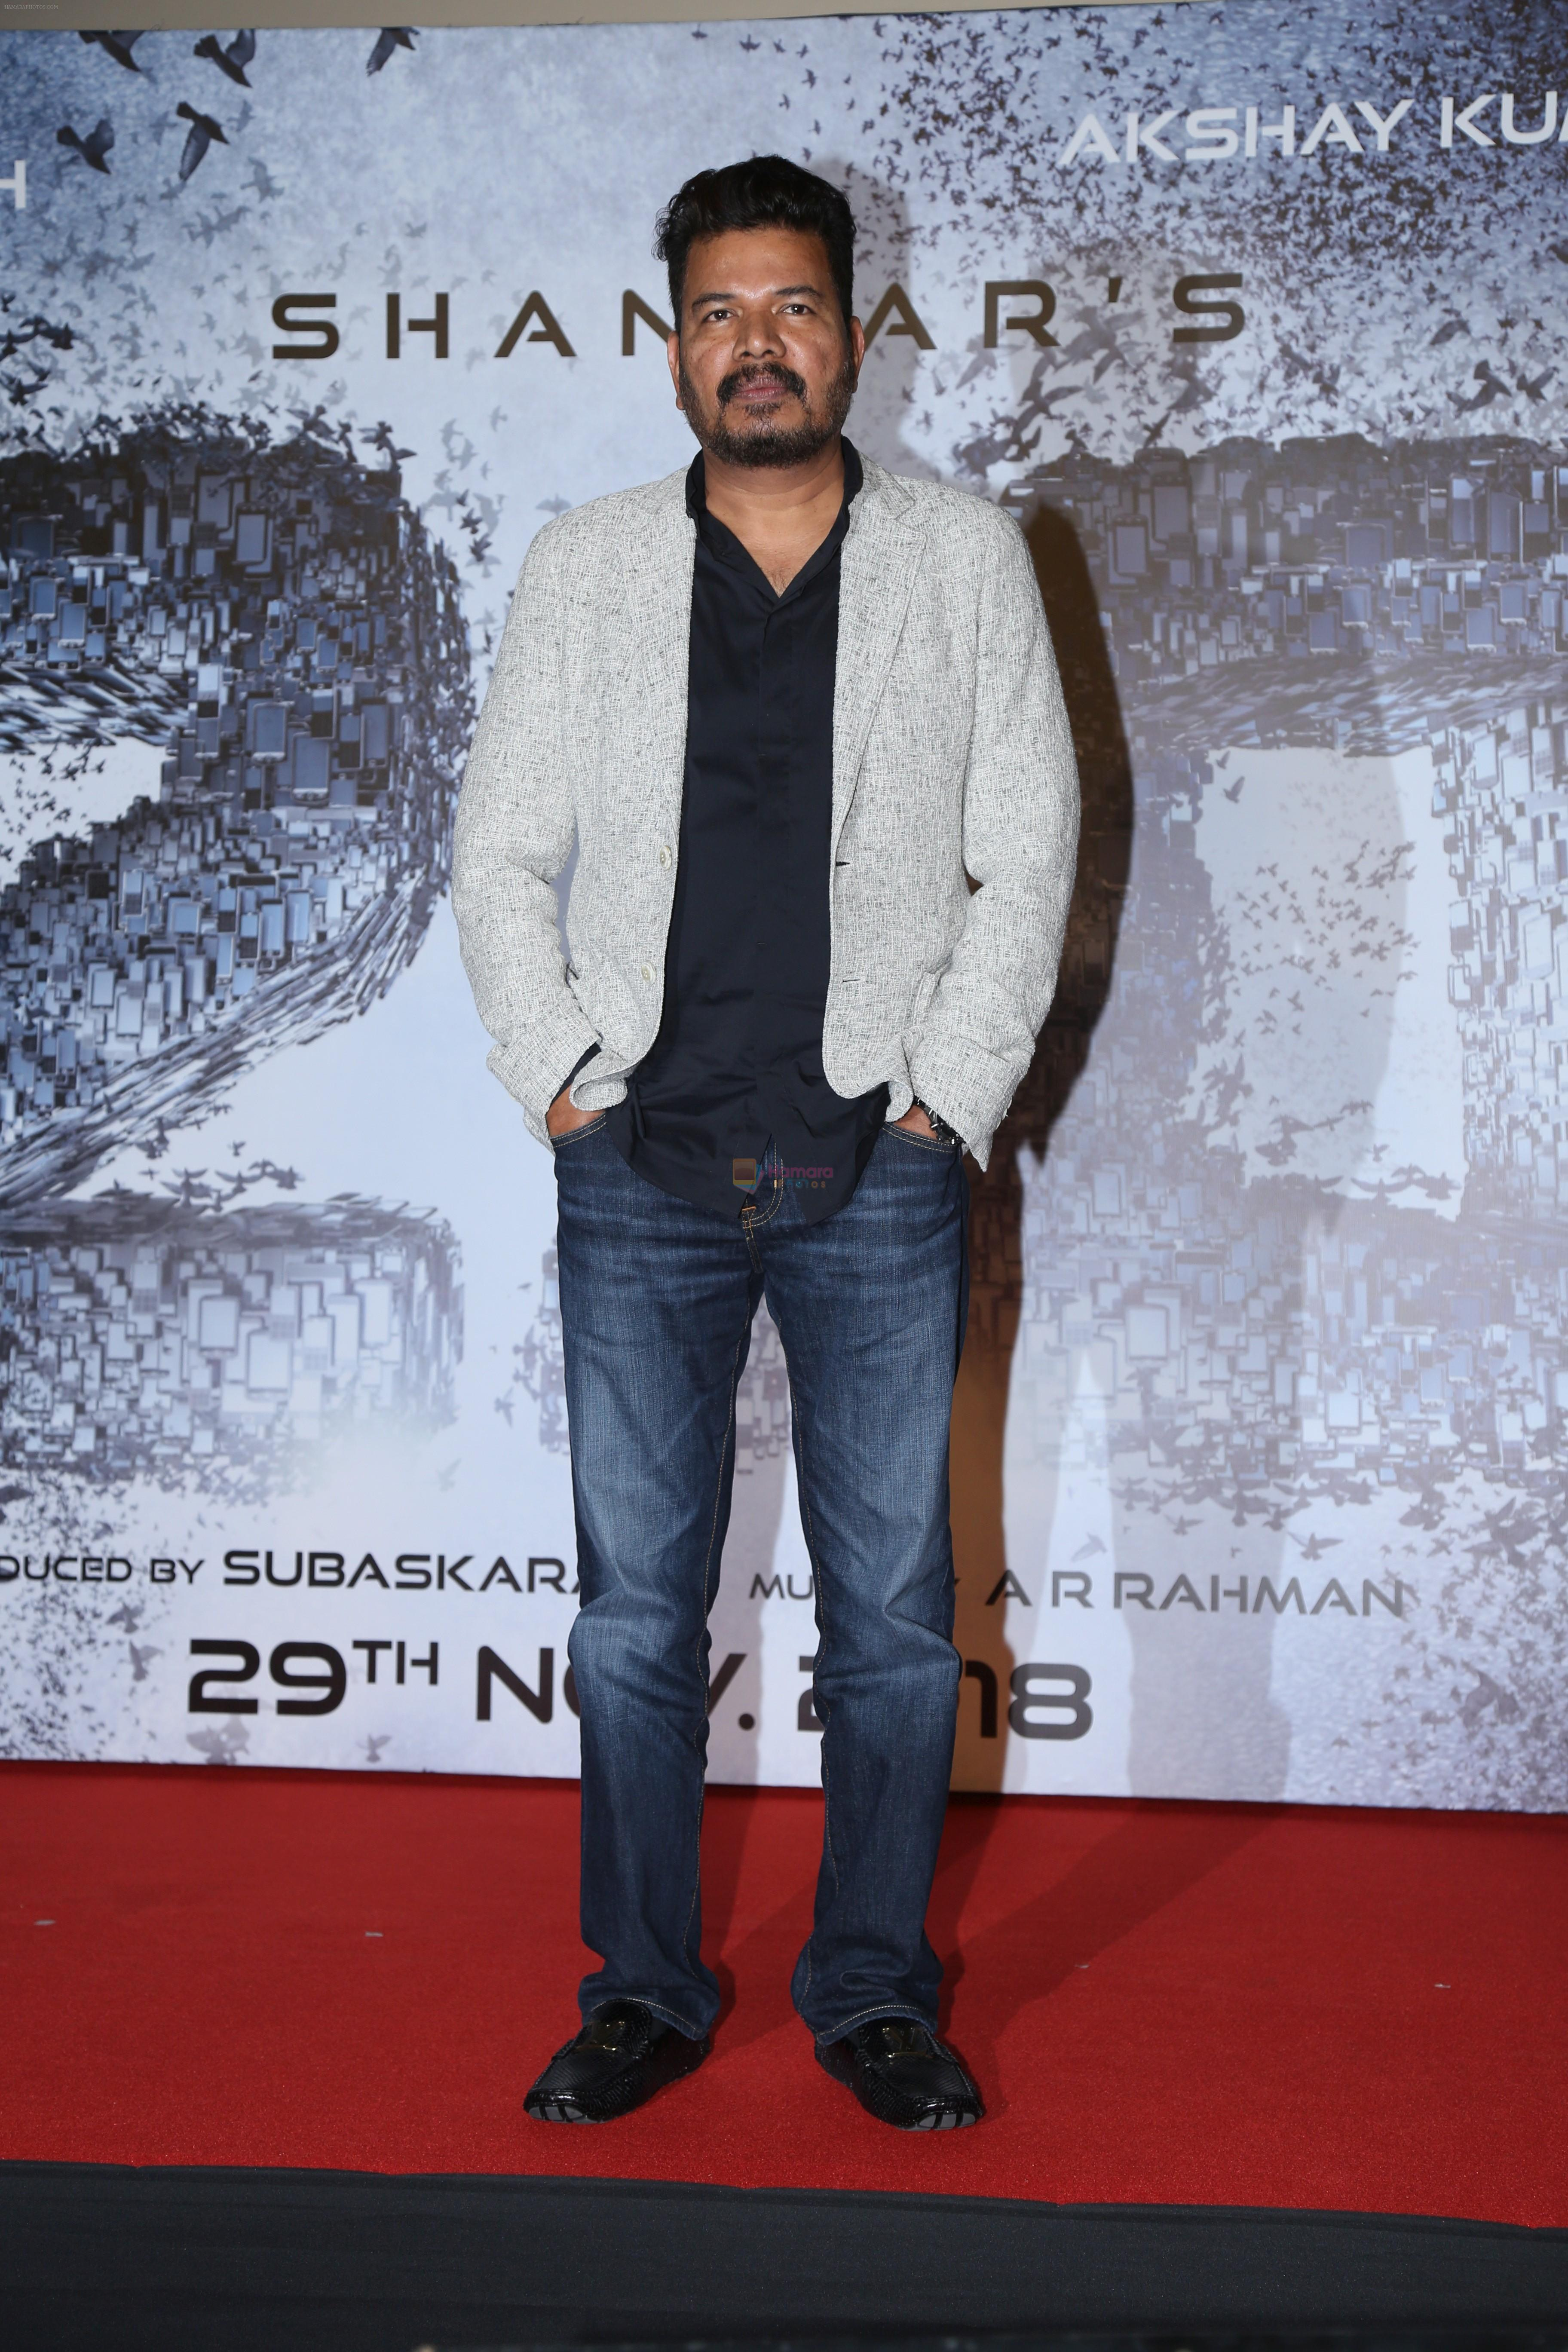 S. Shankar at the Press Conference for film 2.0 in PVR, Juhu on 25th Nov 2018